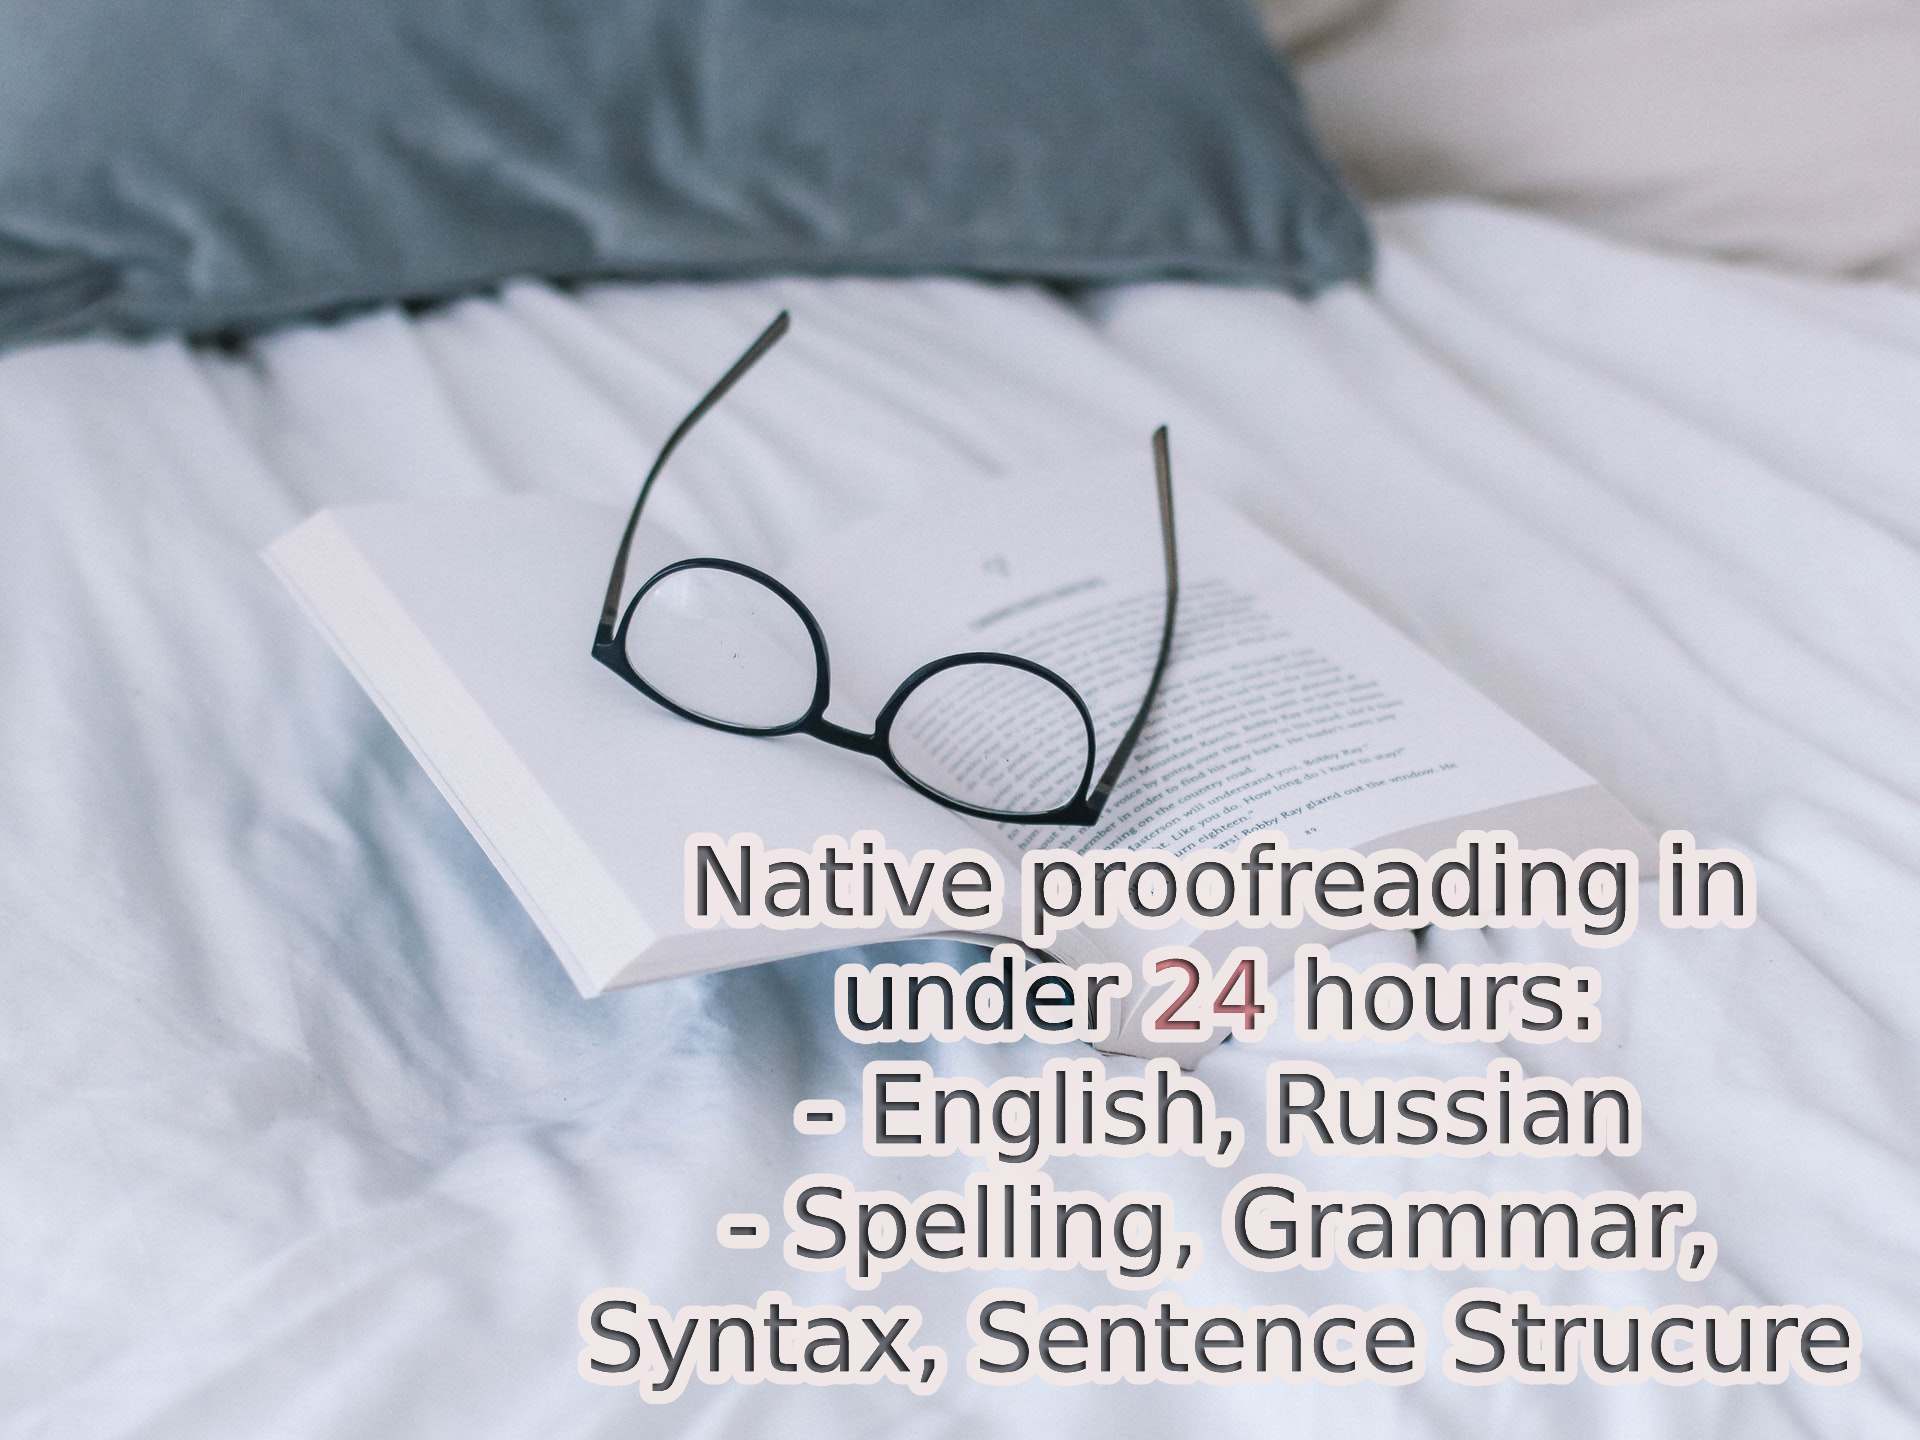 English / Russian Proofreading and Editing in under 24 hours